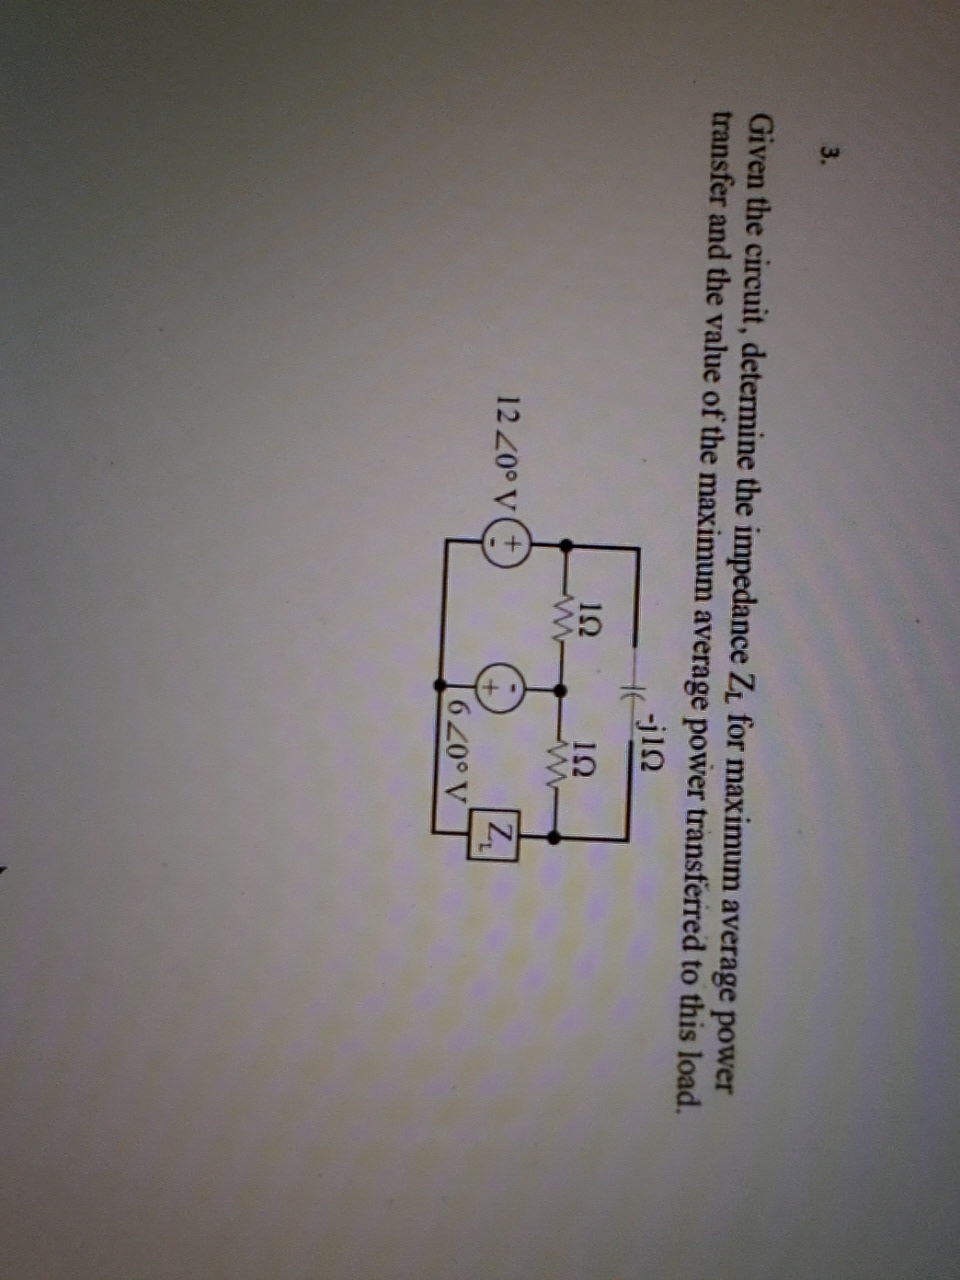 Given the circuit, determine the impedance ZL for